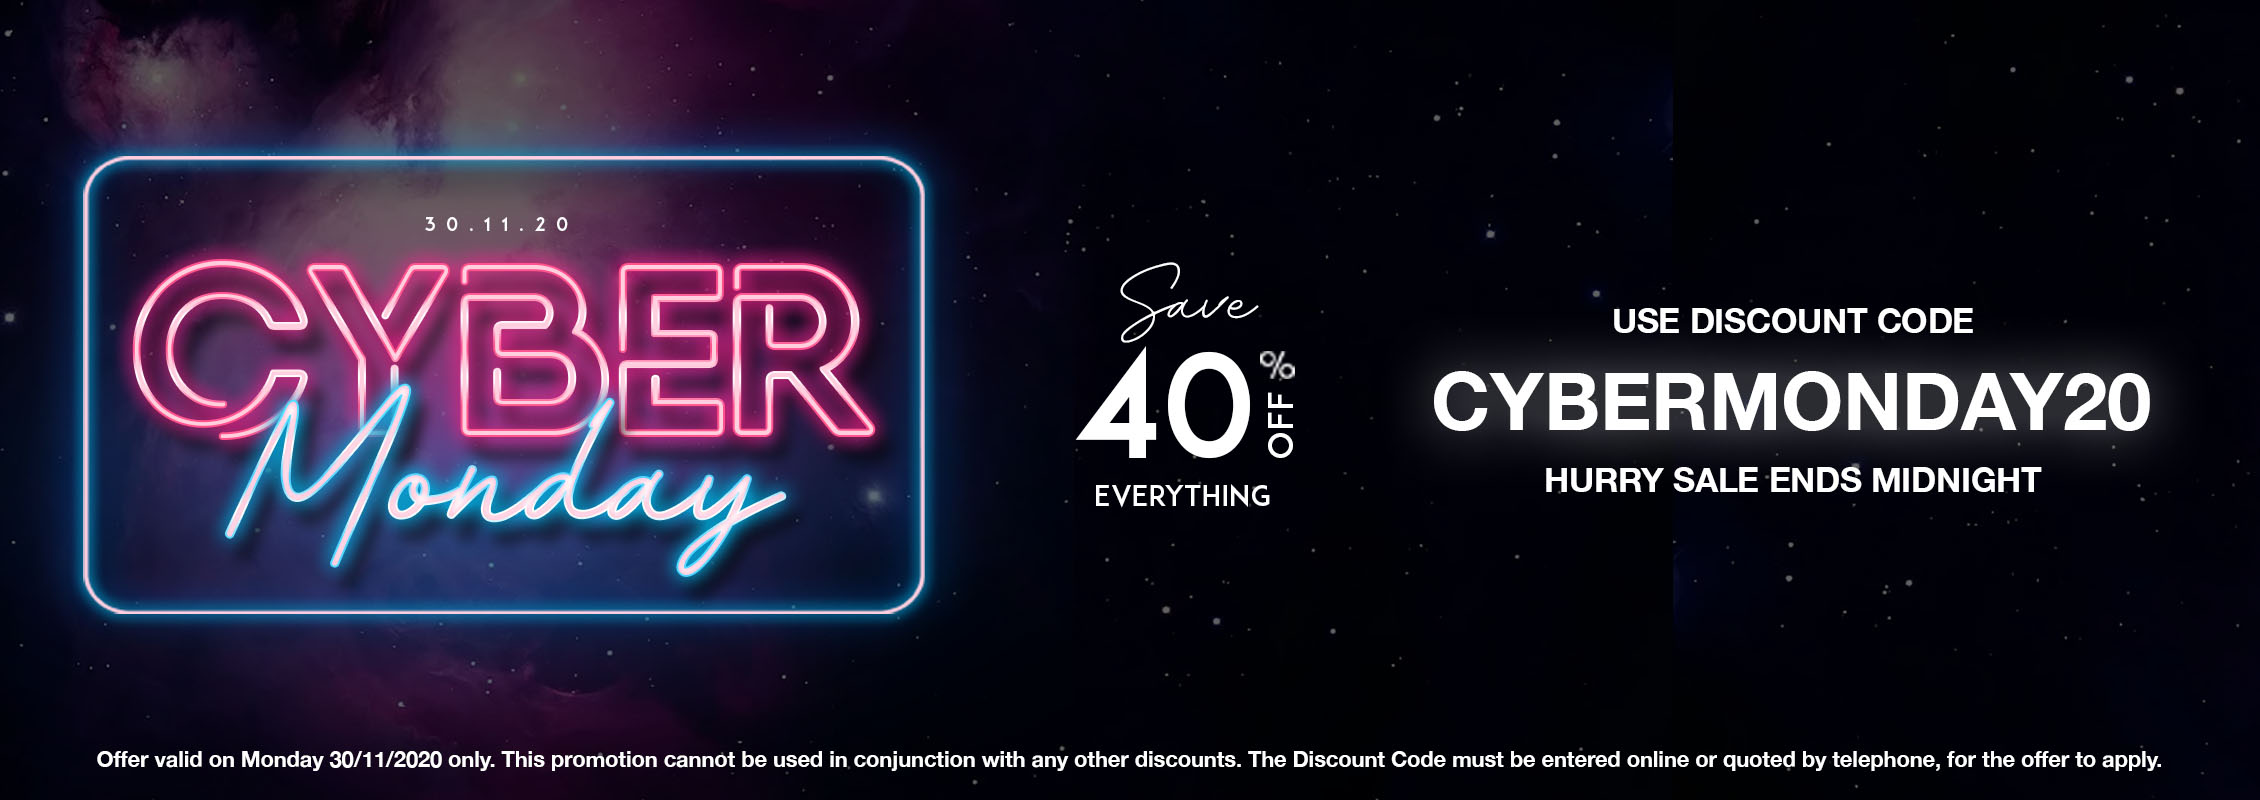 Cyber Monday 2020. 30.11.20. 30th November, 2020. 40% Off. Save 40% off everything. Available: Online | Phone. Use Discount Code: CYBERMONDAY20. Sale Ends: Midnight Tonight. Offer valid on Monday 30/11/2020 only. This promotion cannot be used in conjunction with any other discounts. The Discount Code must be entered online or quoted by telephone, for the offer to apply.